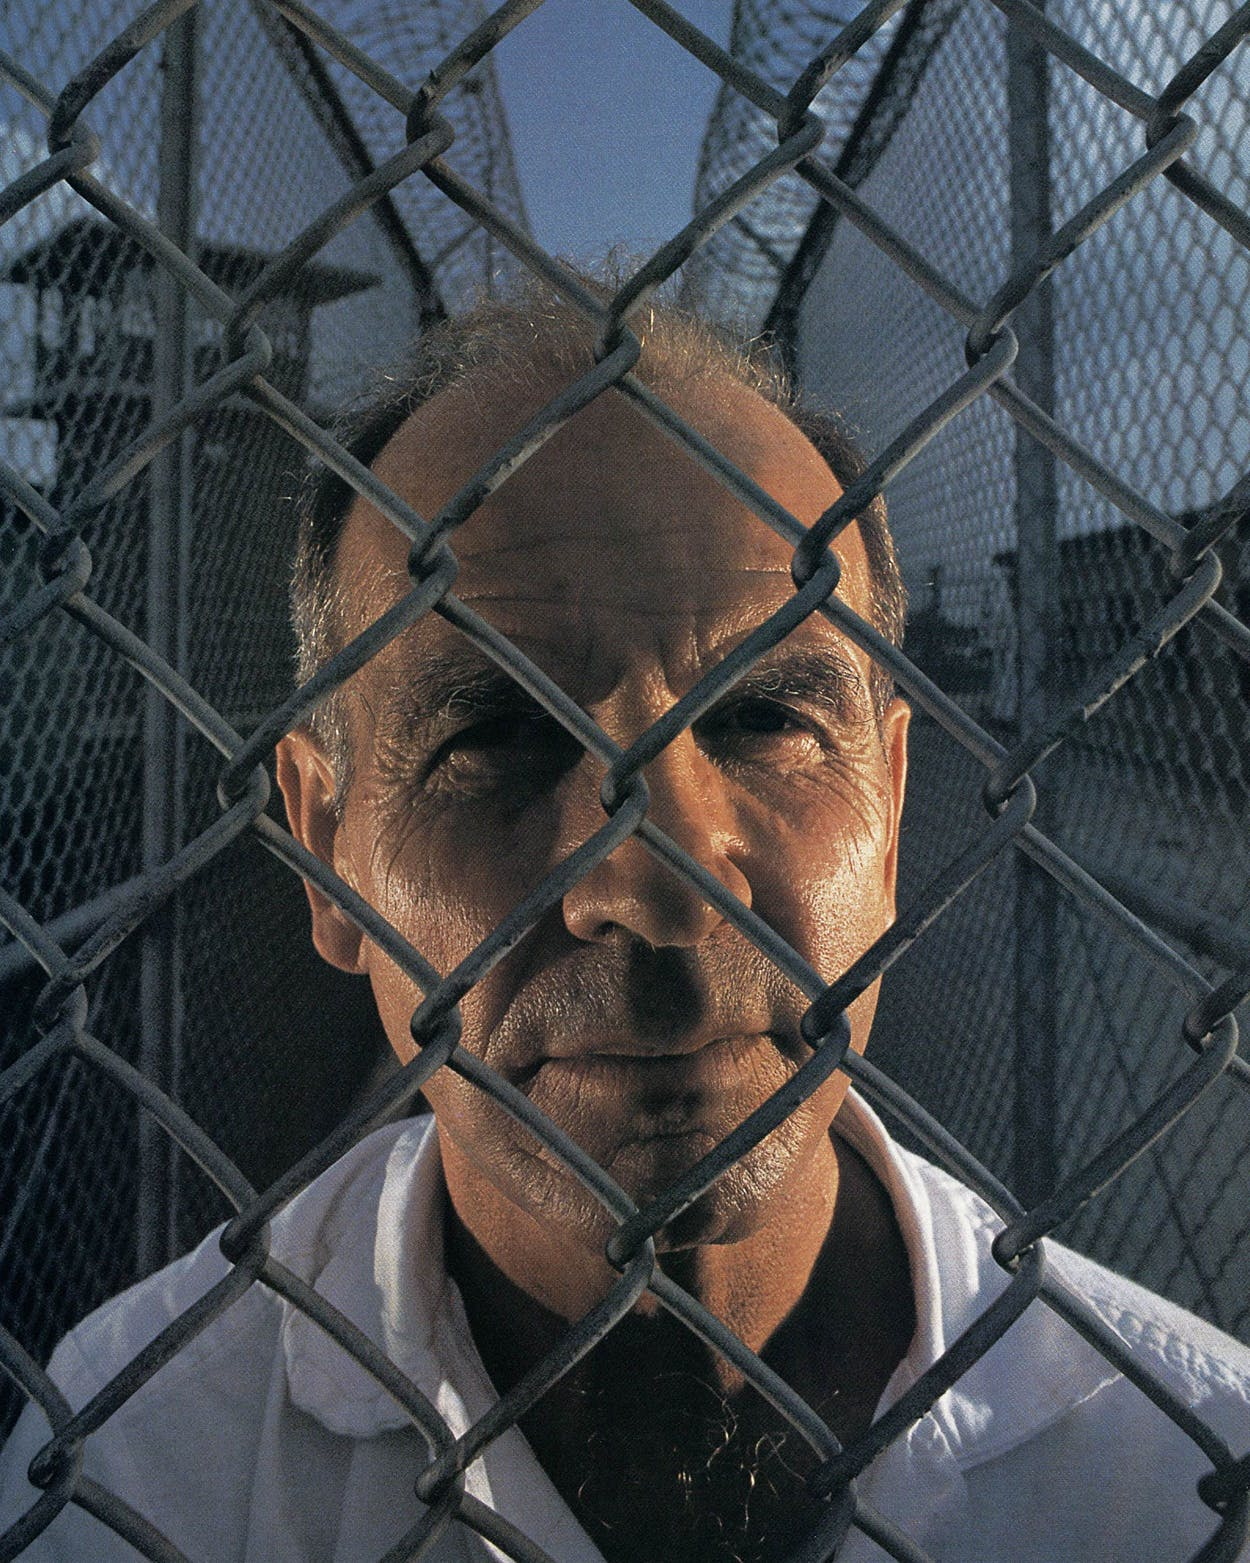 Howard Pharr looks through a chain link fence at prison.